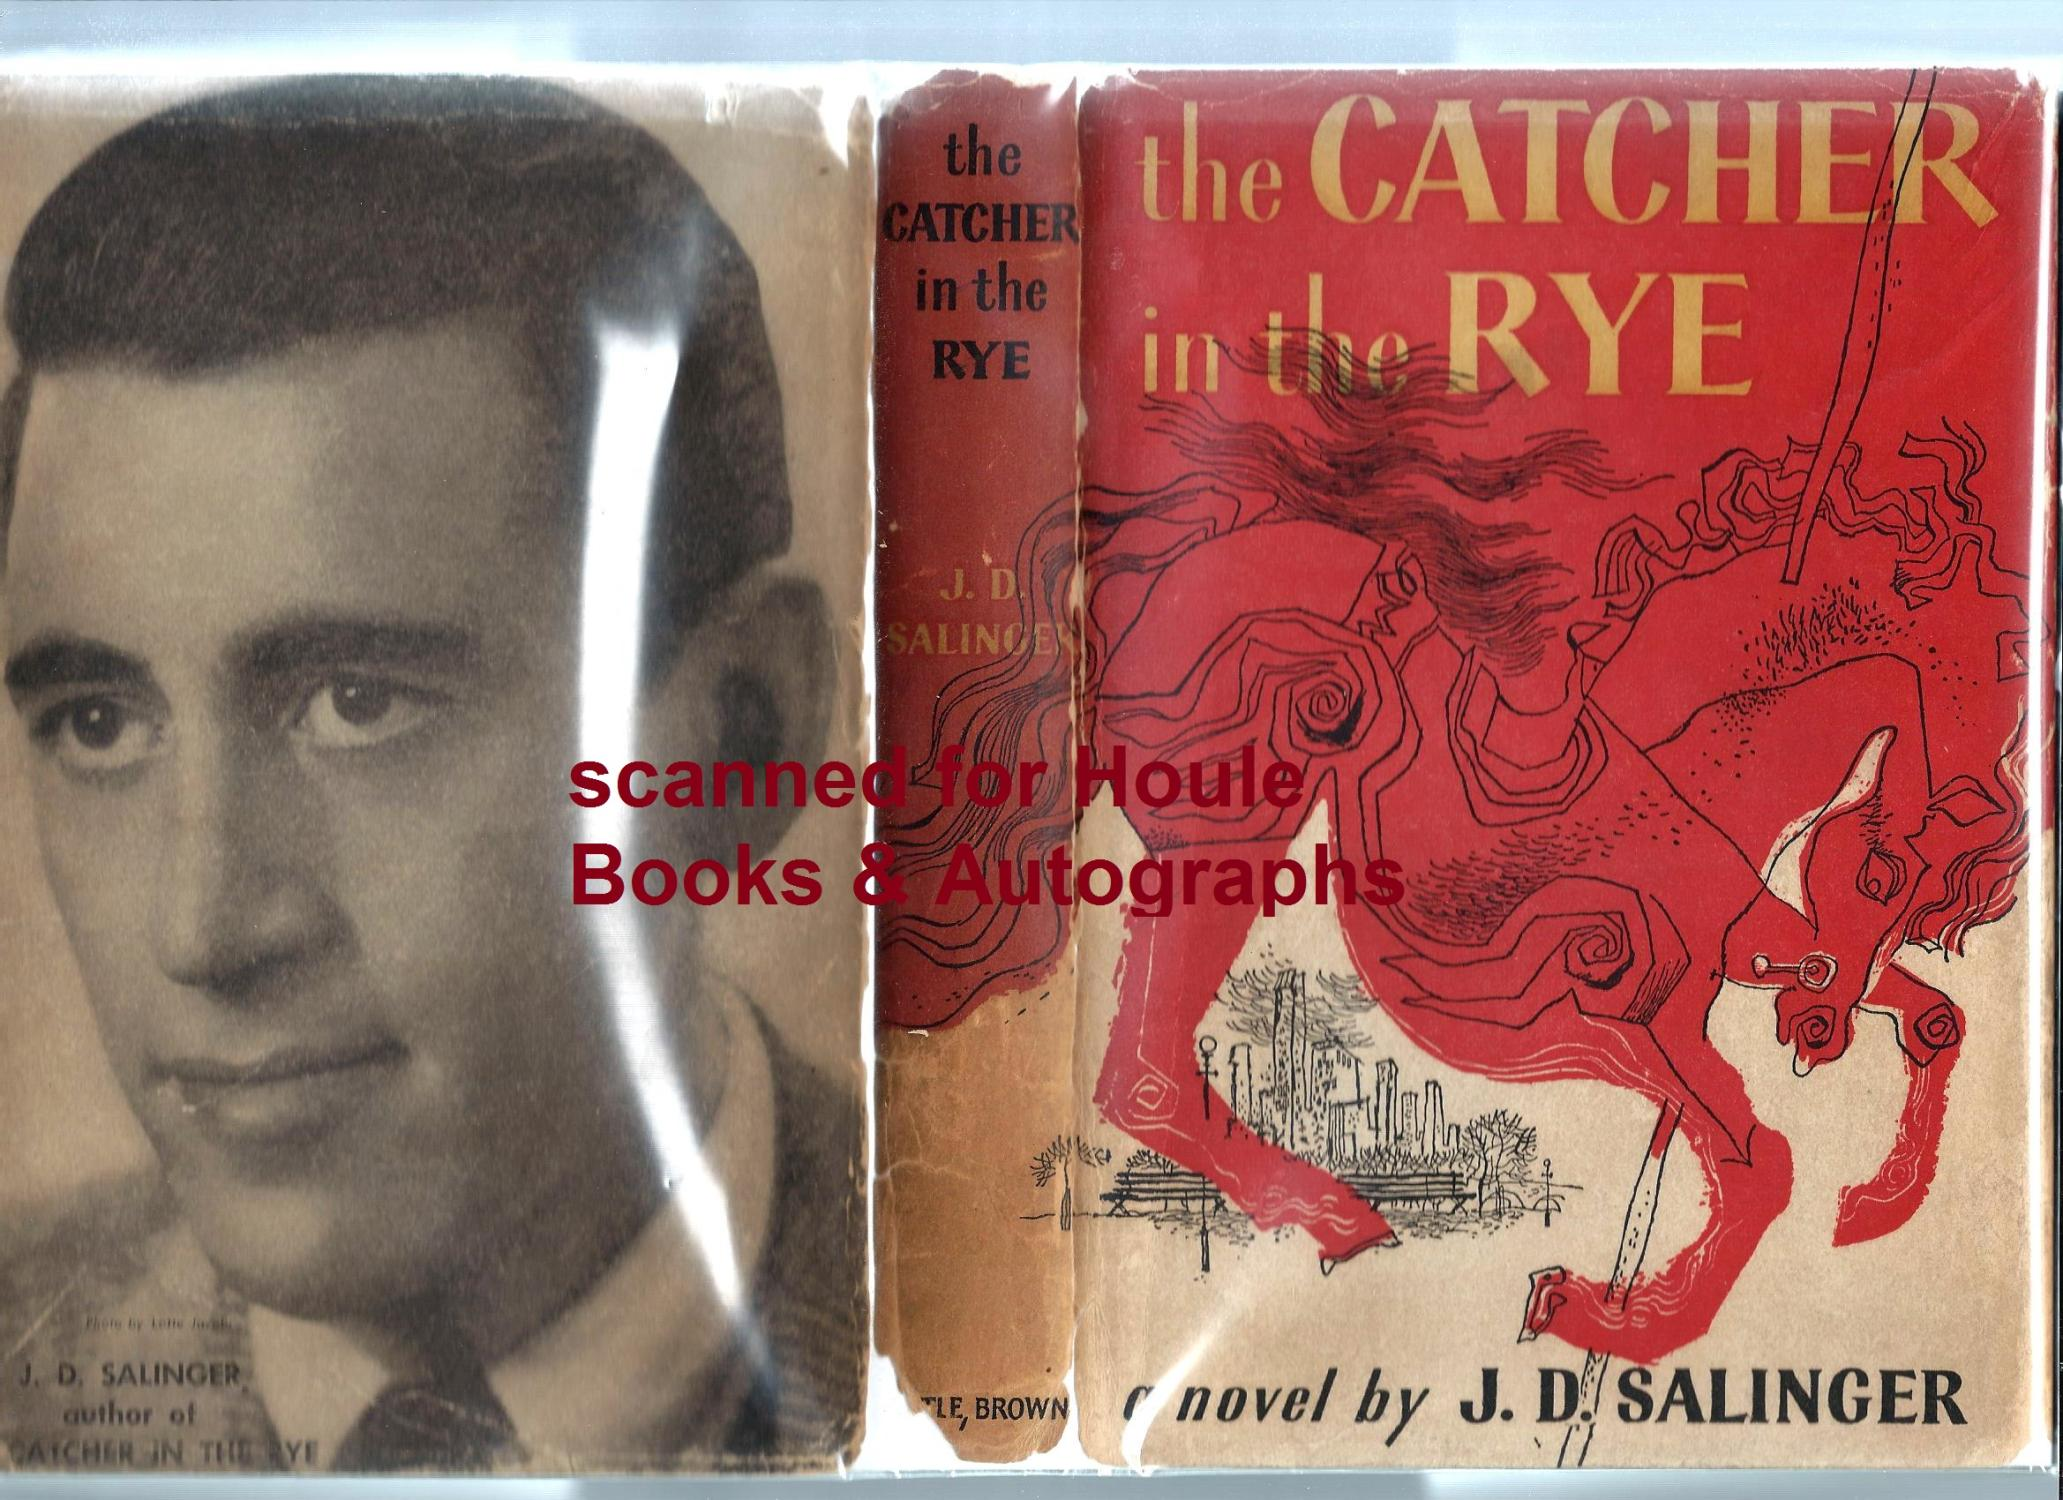 catcher in the rye litchart Ok, ok, we know this is a well-known fact, but still: mark david chapman, the man who shot john lennon, was carrying a copy of the catcher in the rye when he was arrested.